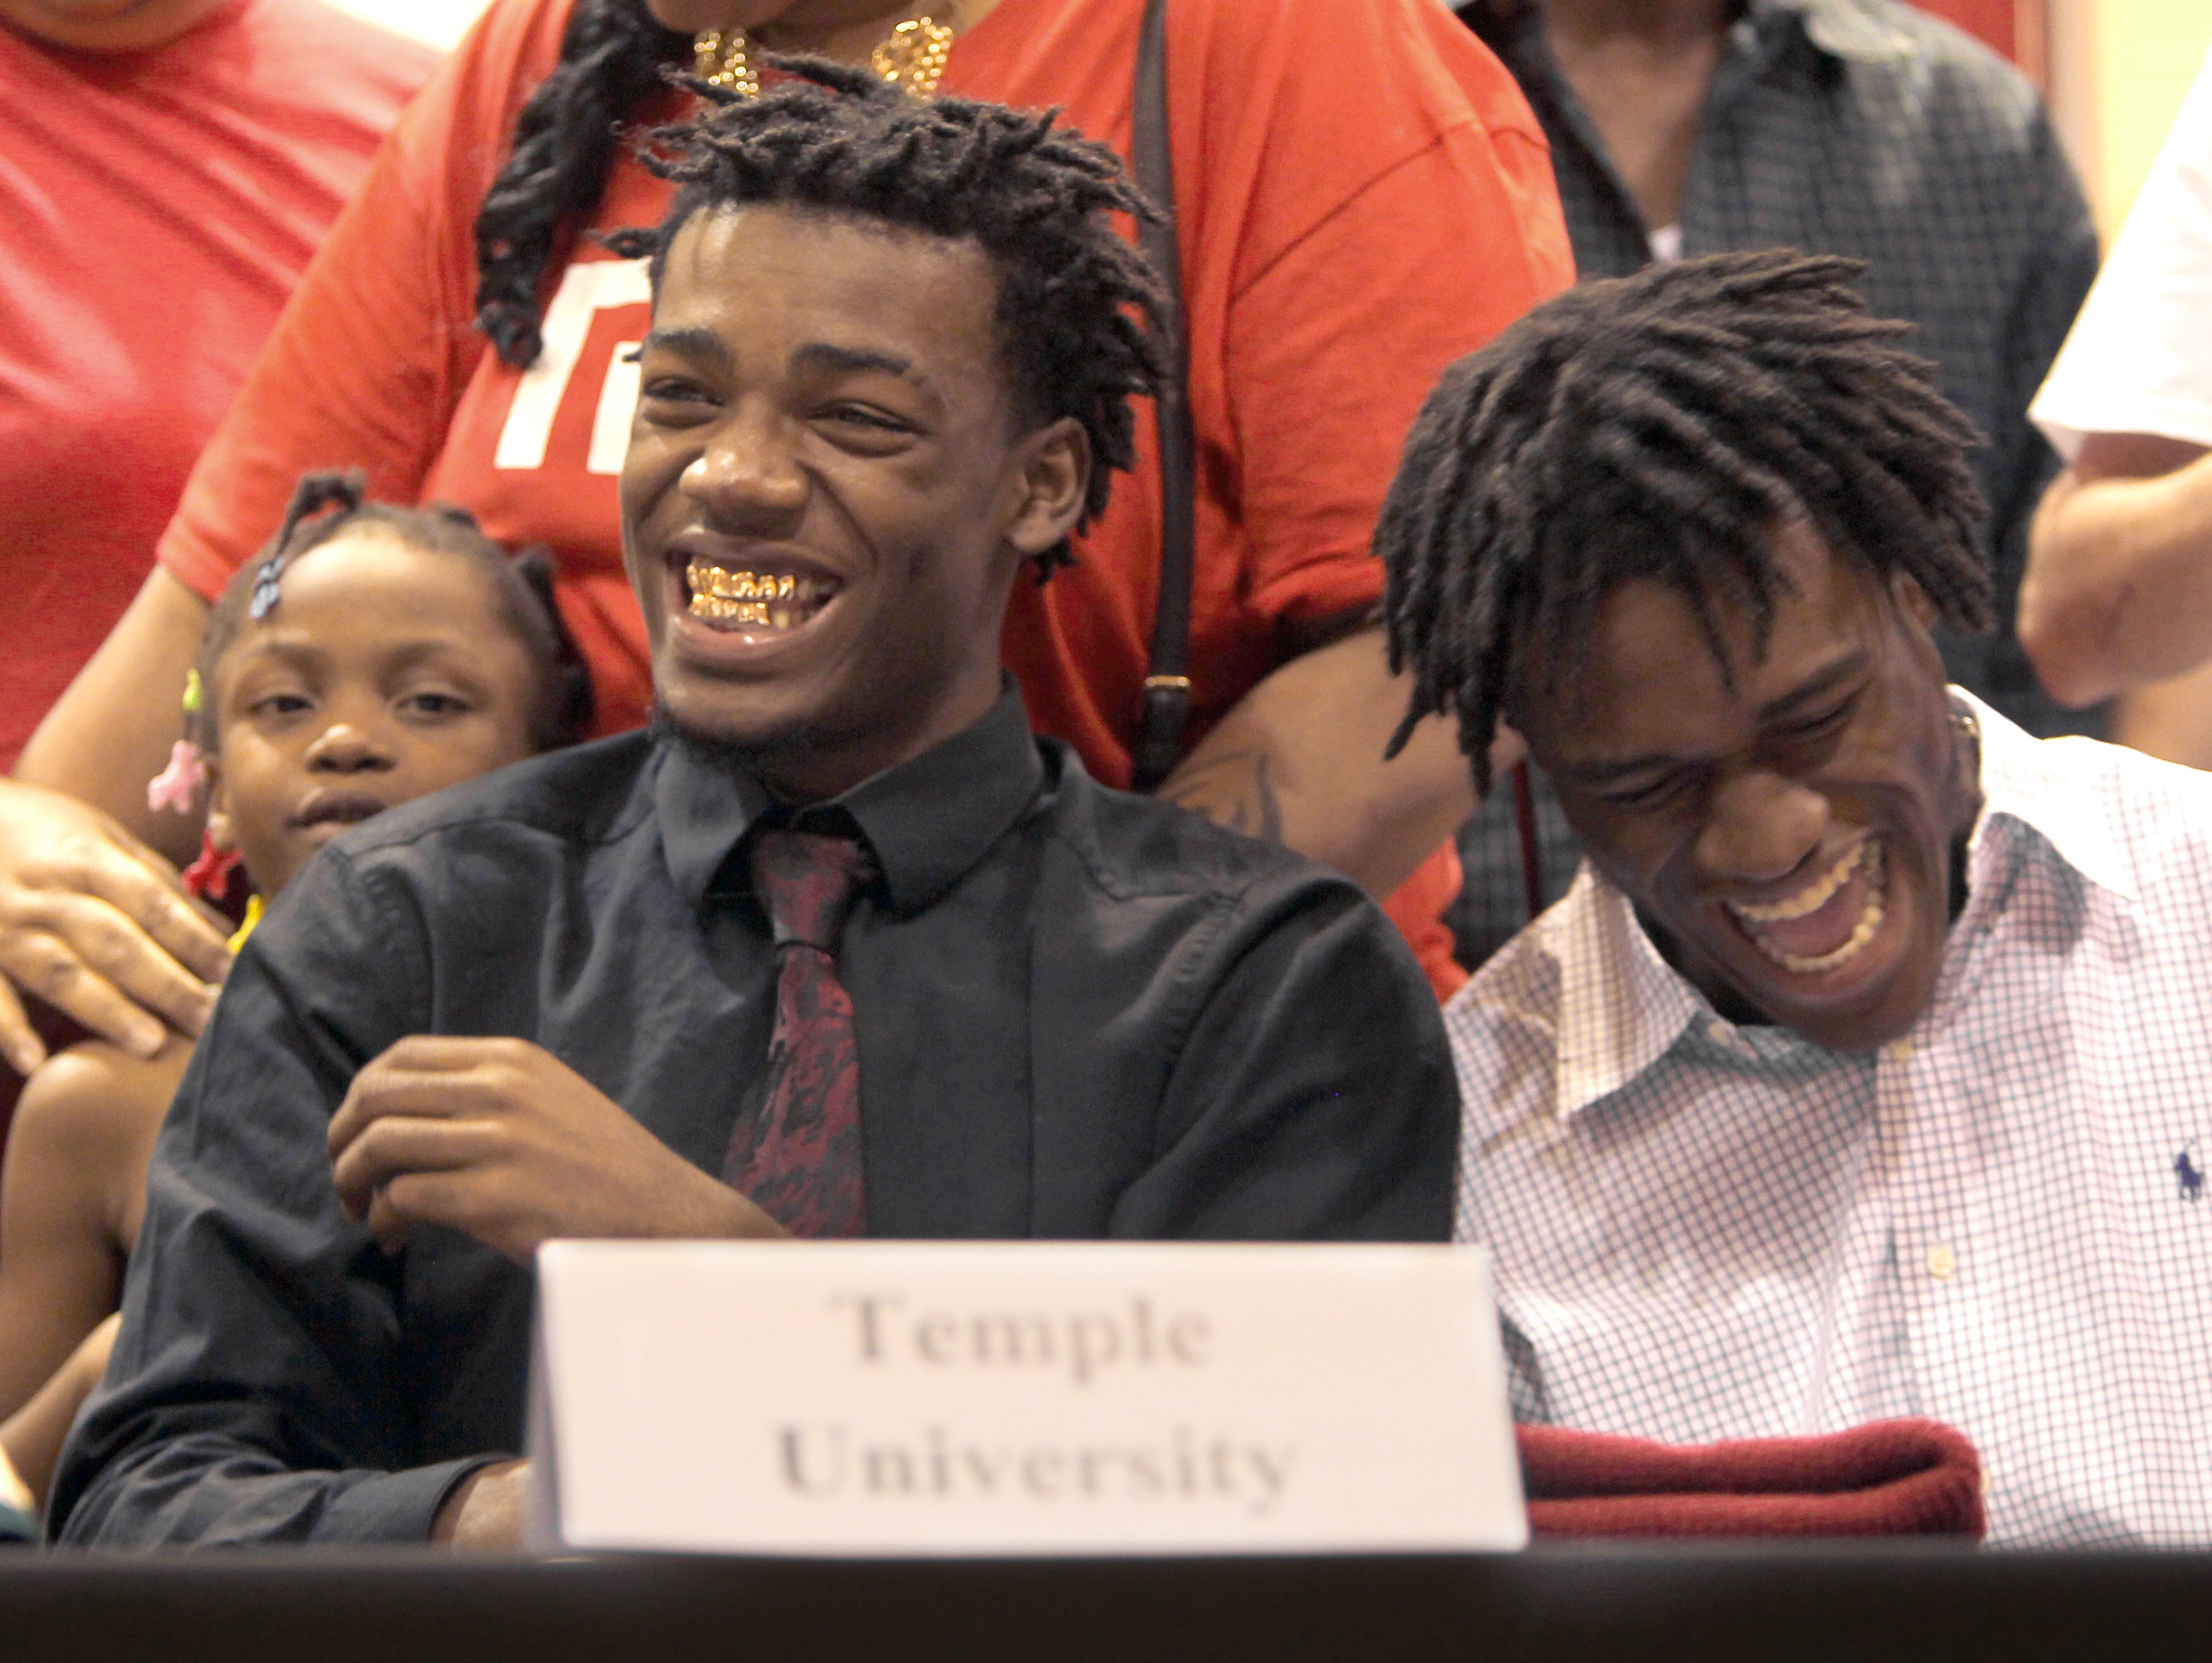 North Fort Myers football players Freddie Johnson, left, and Austin Watkins share a laugh after signing their letters of intent to attend Temple (Johnson) and Dodge City (Watkins) Wednesday during National Signing Day.